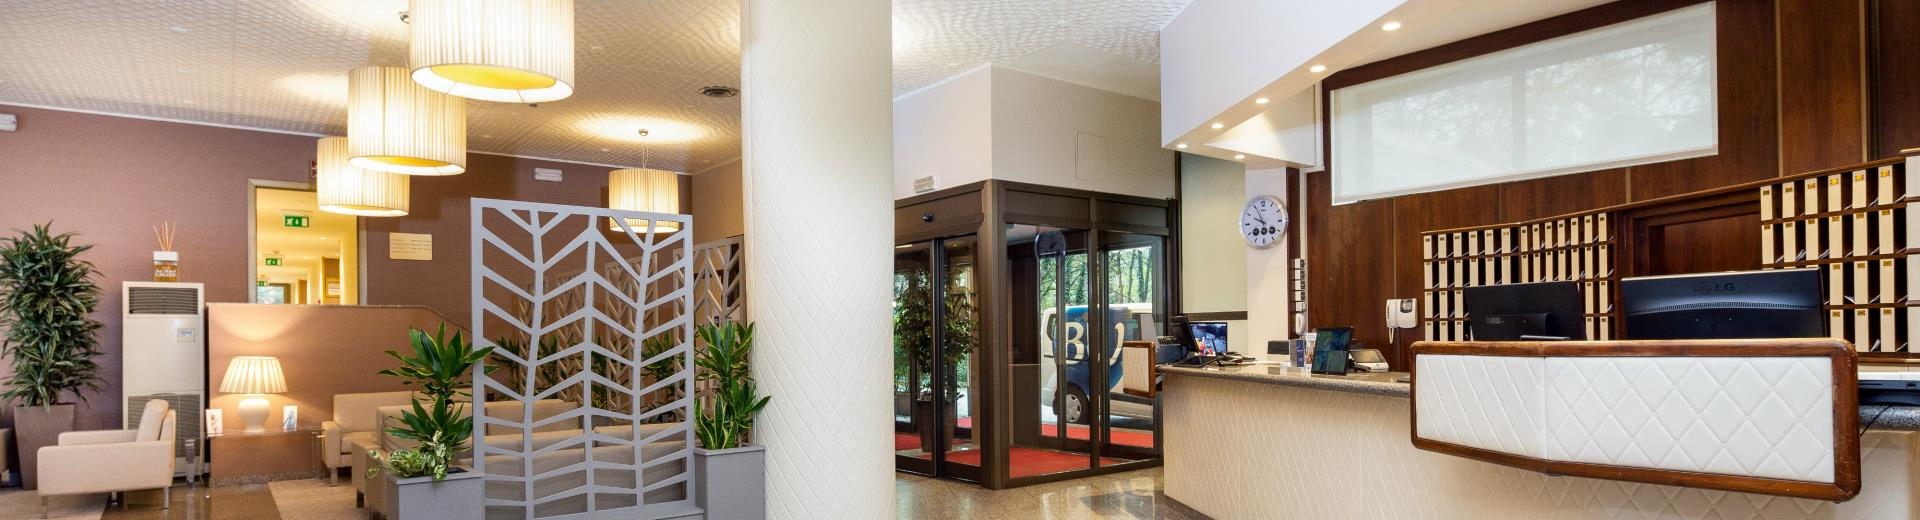 Admission - Best Western Air Hotel Linate